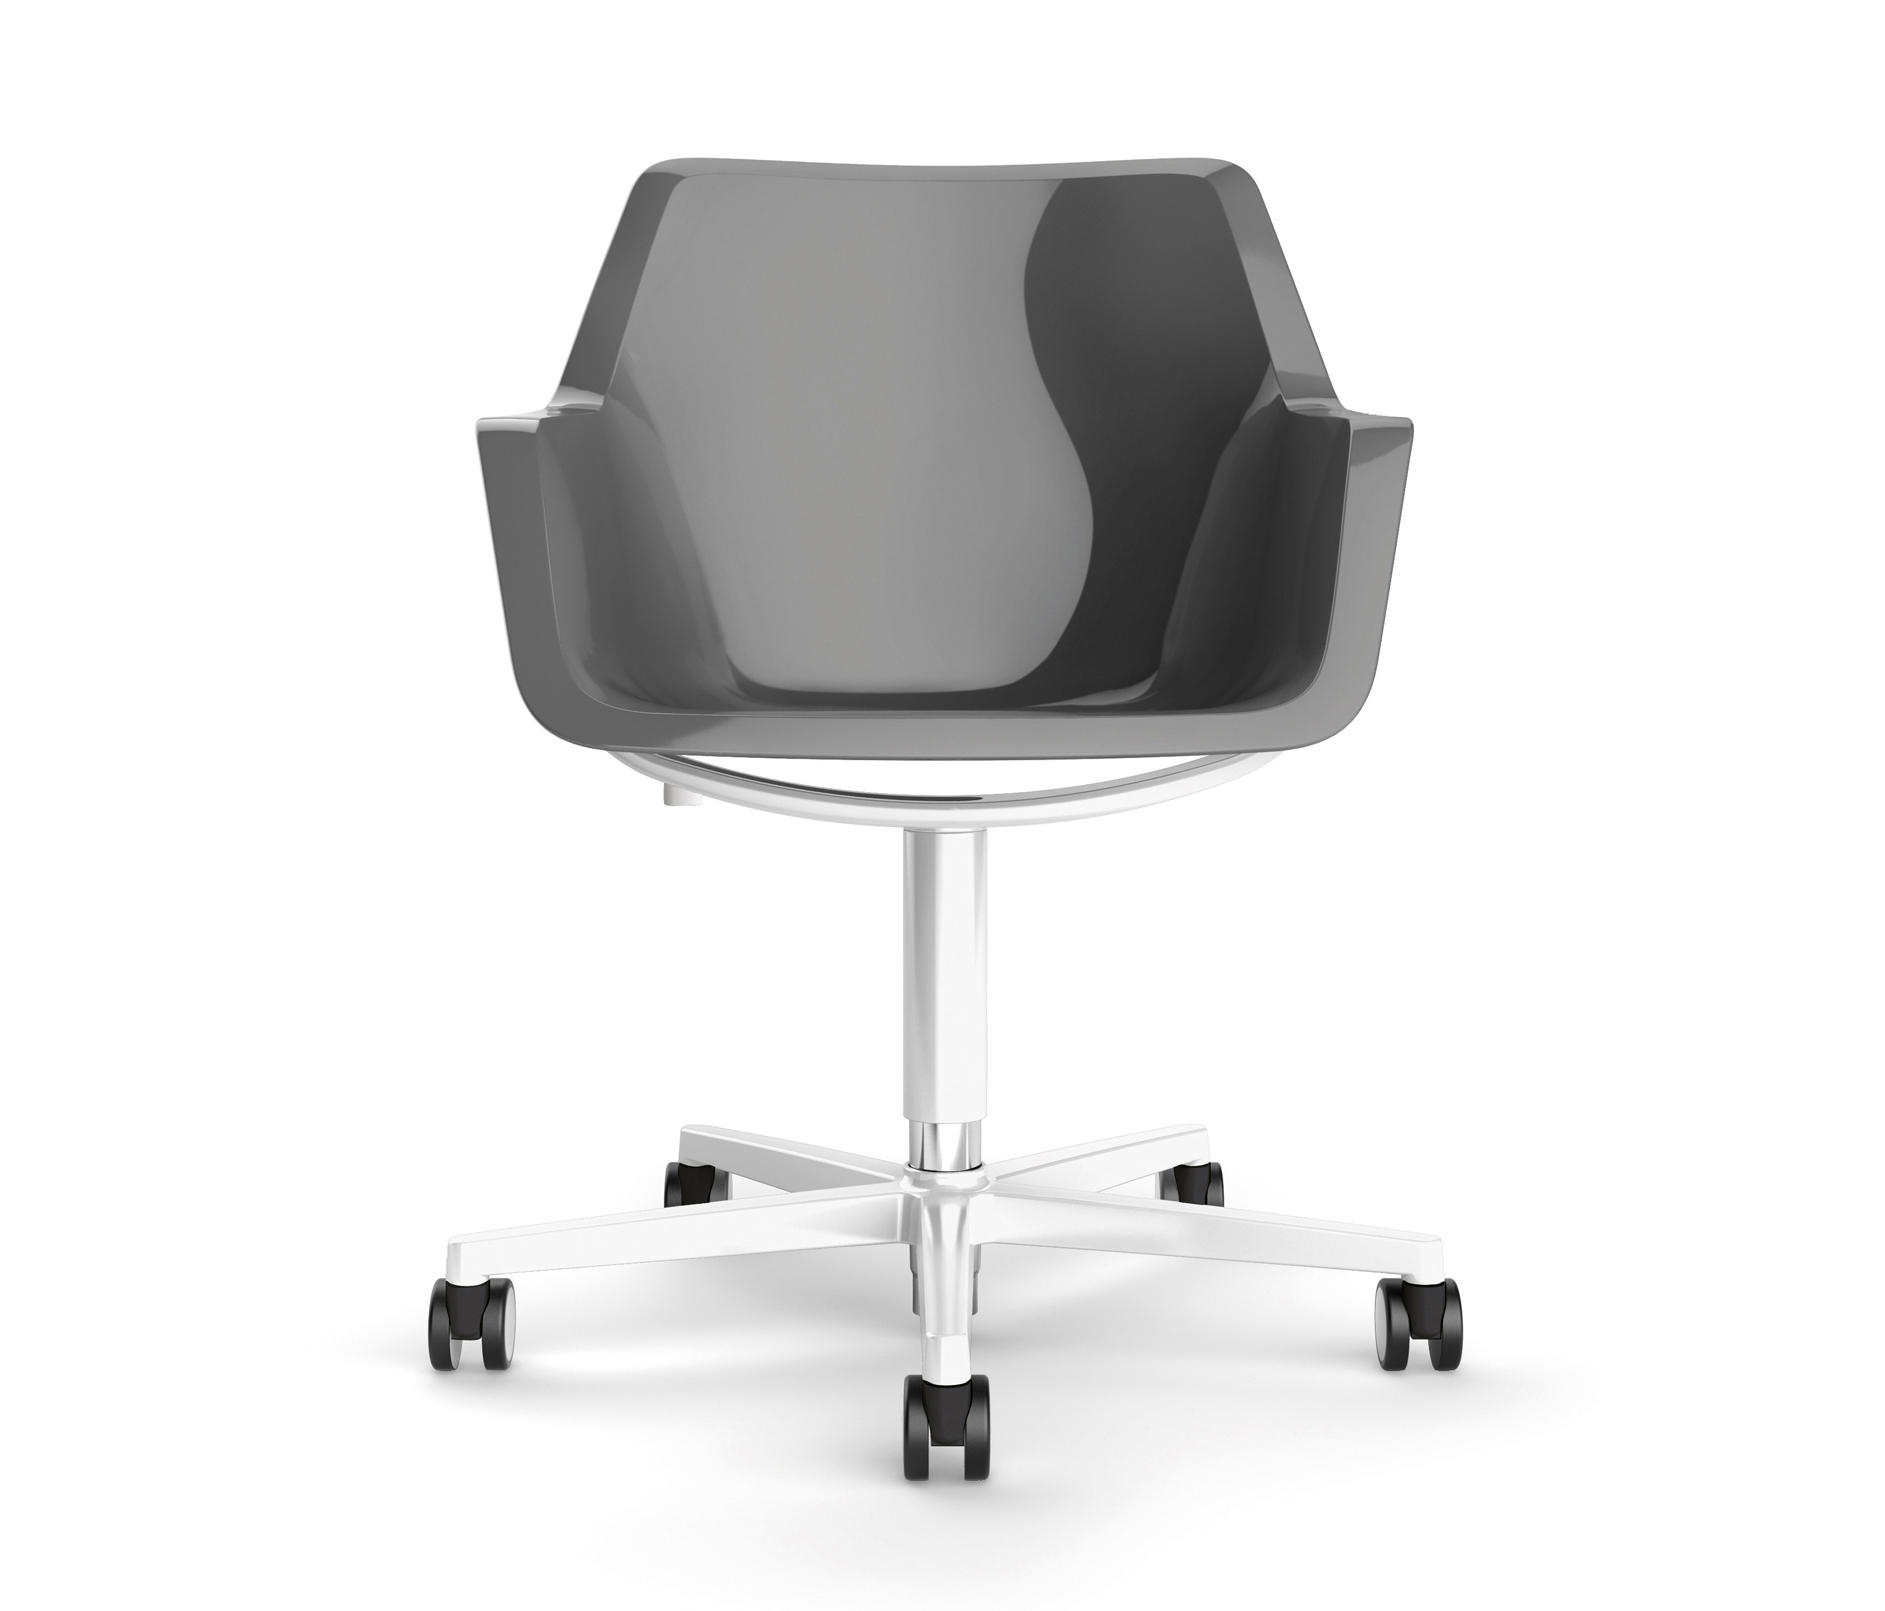 RE PEND TASK CHAIR Task chairs from viasit